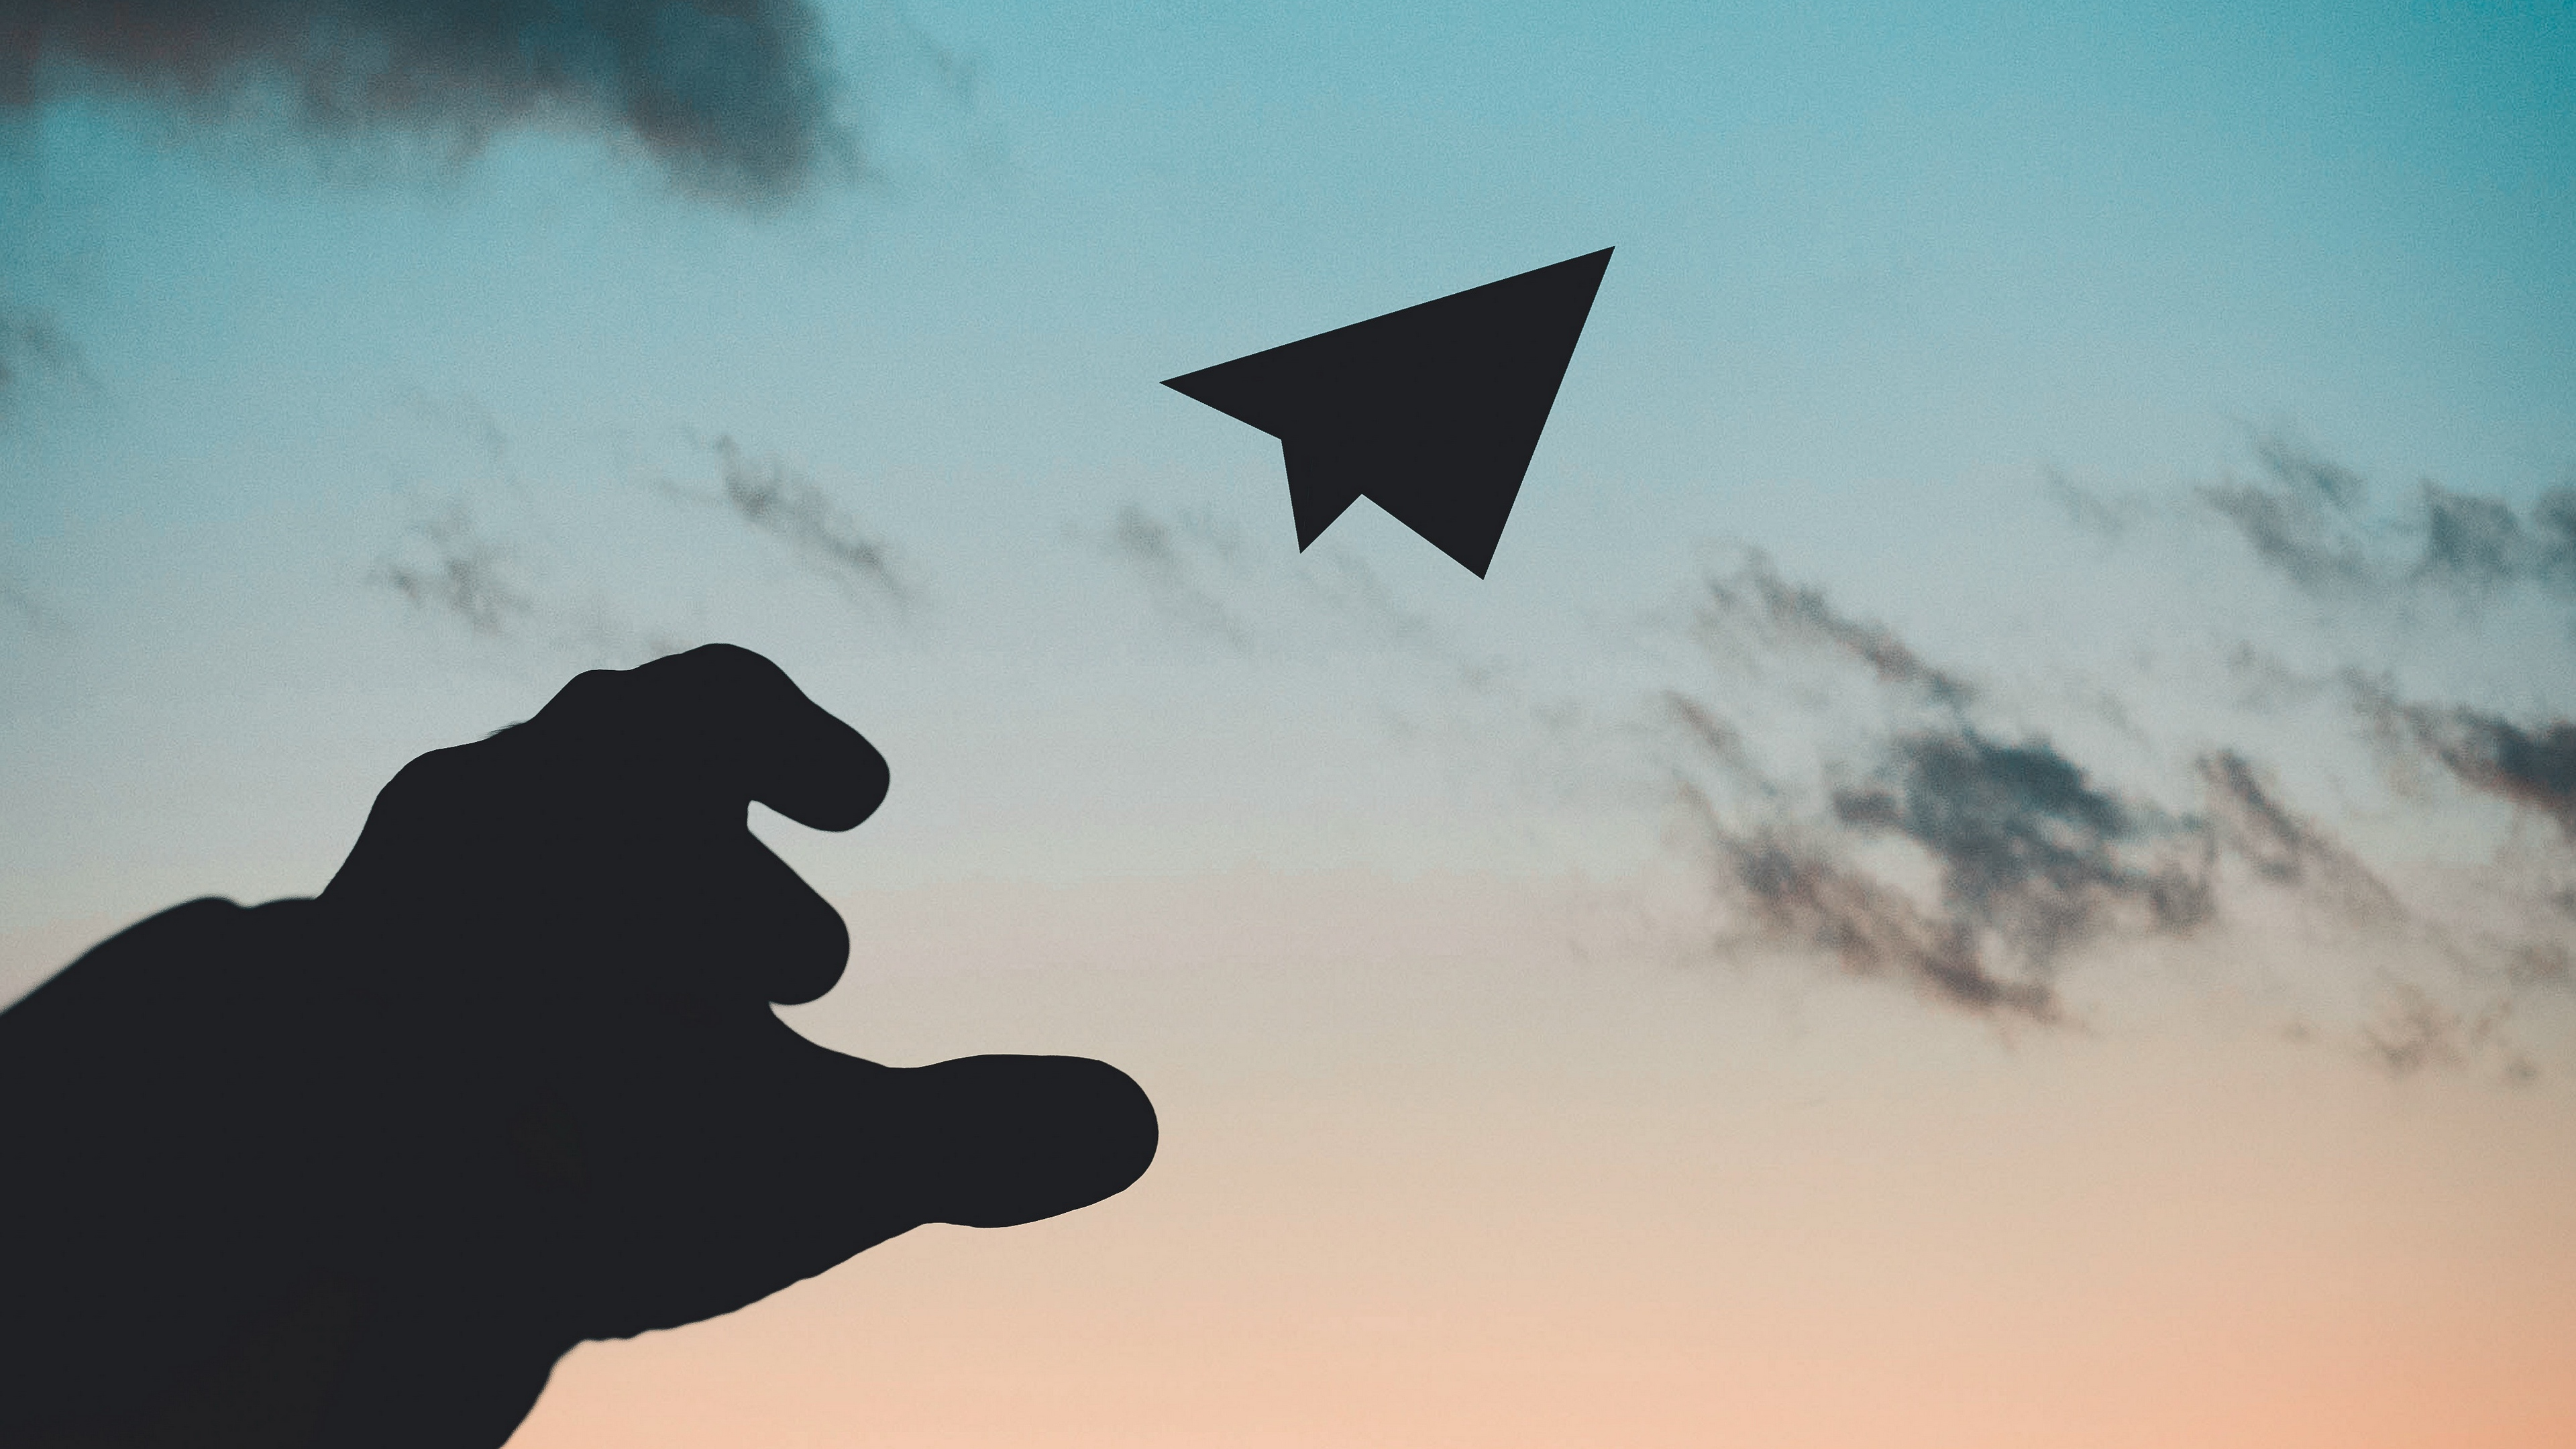 paper airplane hand sky sunset 4k 1540574974 - paper airplane, hand, sky, sunset 4k - Sky, paper airplane, hand